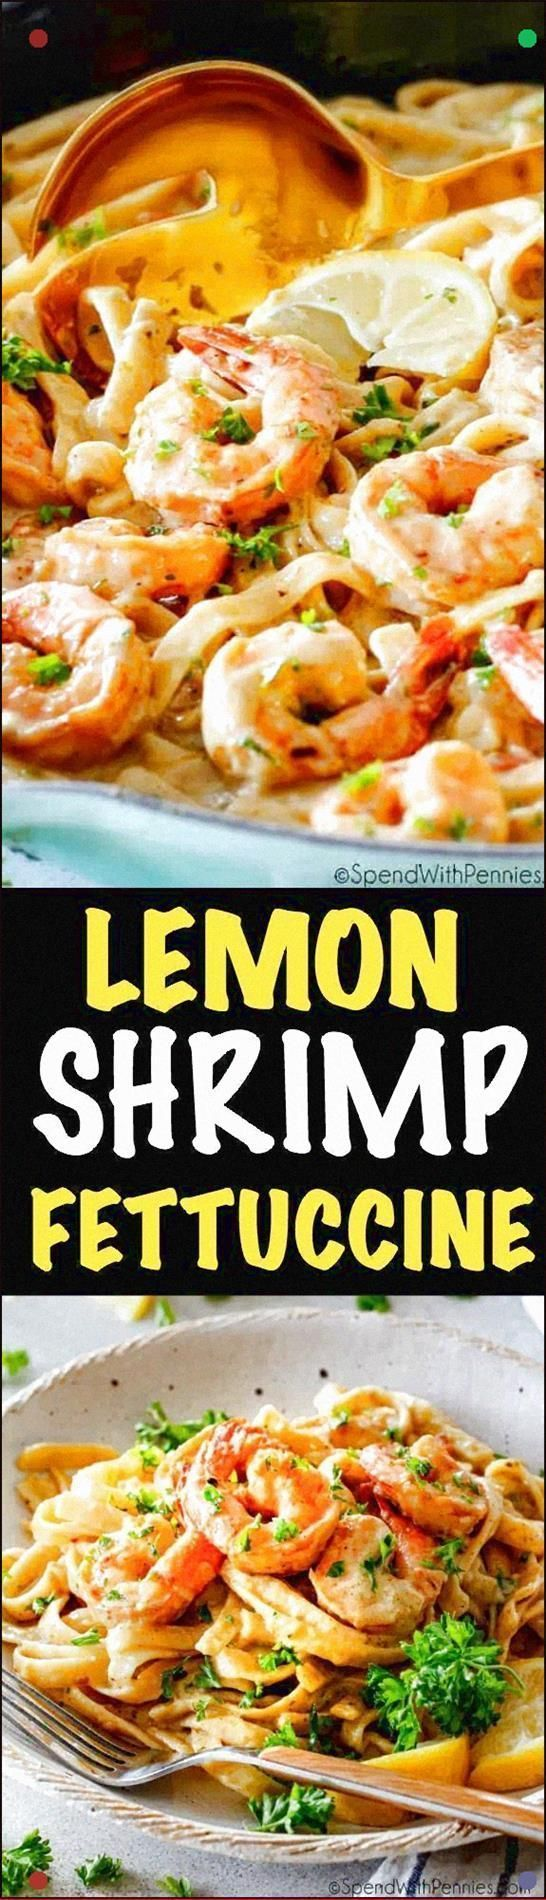 Wonderfully Creamy, Indulgent Lemon Garlic Shrimp Fettuccine Is Bursting With Flavor And On Your Table In 20 Minutes It Is The Easiest, Most Satisfying Meal That Tastes Totally Gourmet #shrimpfettuccine Wonderfully Creamy, Indulgent Lemon Garlic Shrimp Fettuccine Is Bursting With Flavor And On Your Table In 20 Minutes It Is The Easiest, Most Satisfying Meal That Tastes Totally Gourmet #shrimpfettuccine Wonderfully Creamy, Indulgent Lemon Garlic Shrimp Fettuccine Is Bursting With Flavor And On Yo #shrimpfettuccine